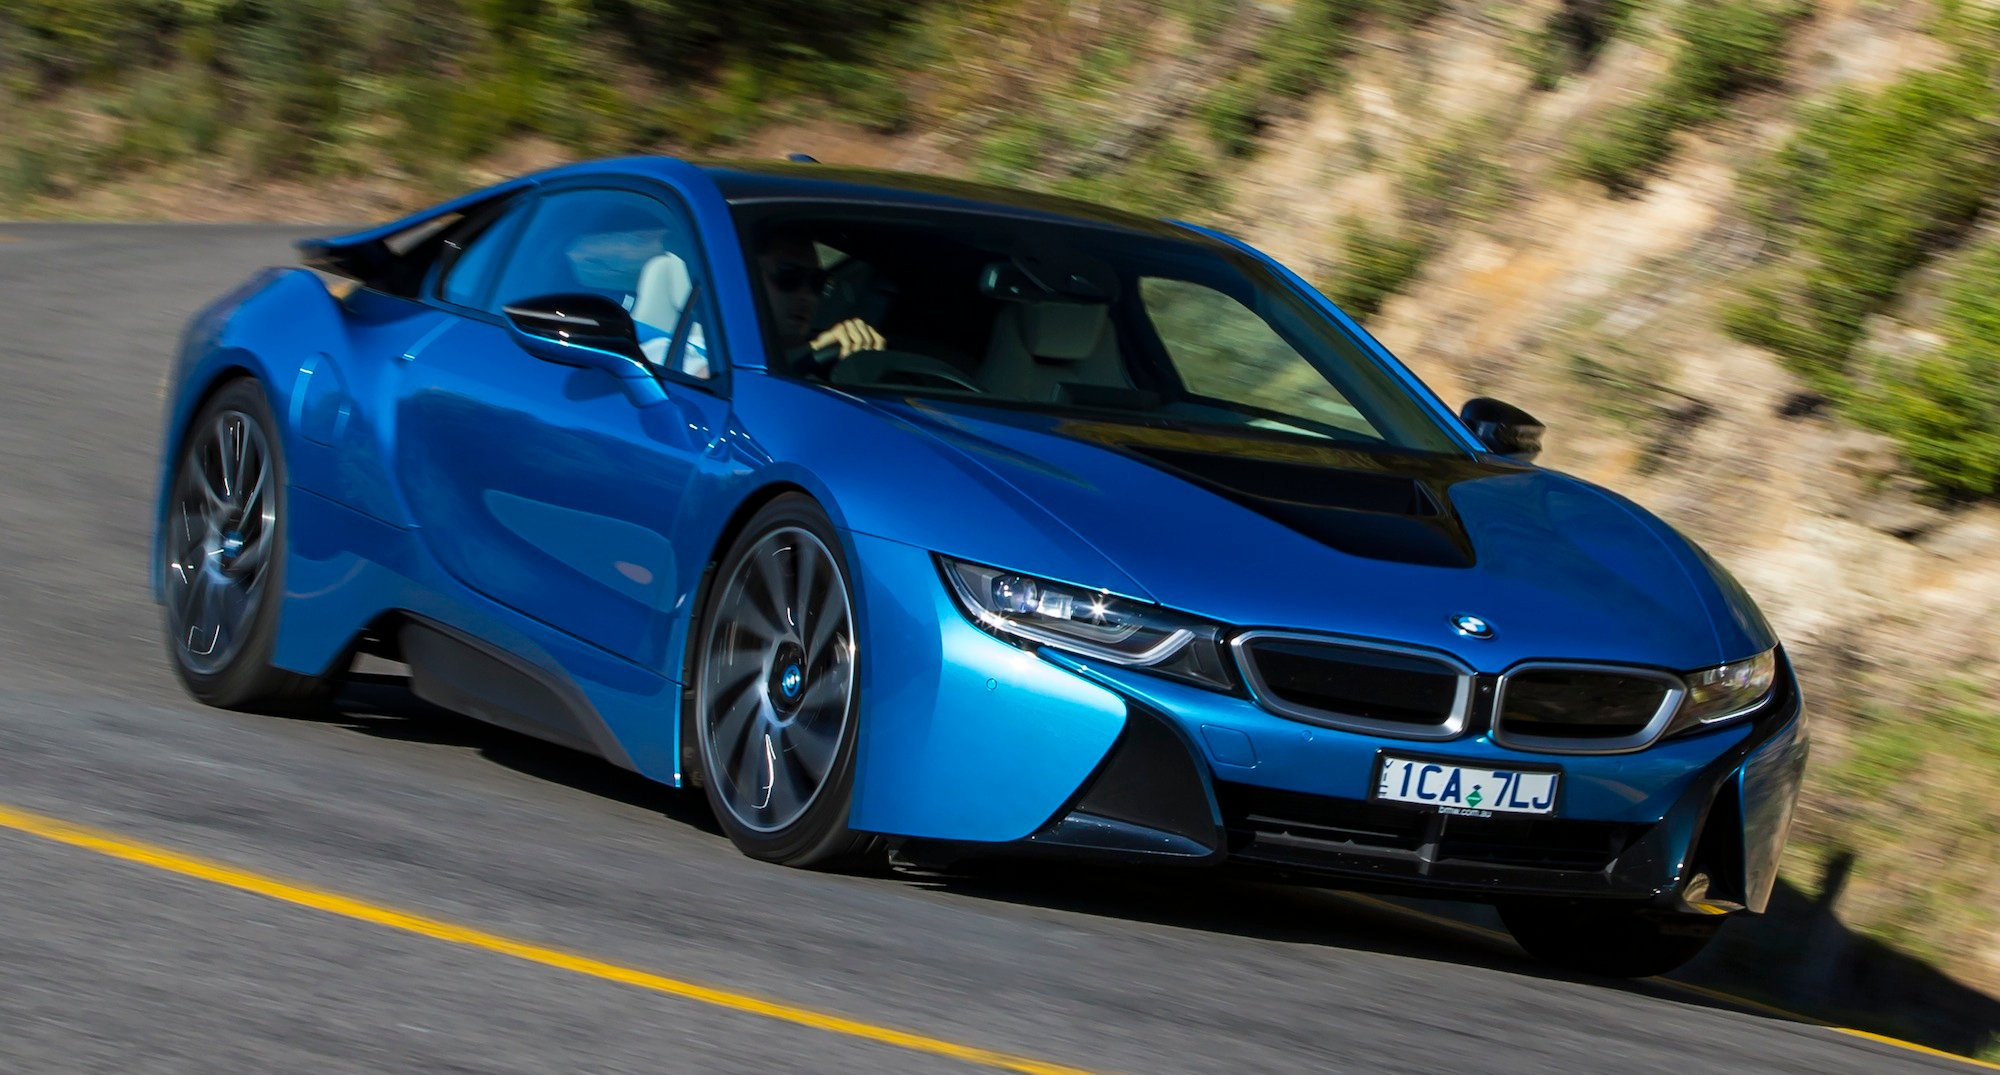 Bmw Toyota Partnership To Deliver Halo Supercars By 2020